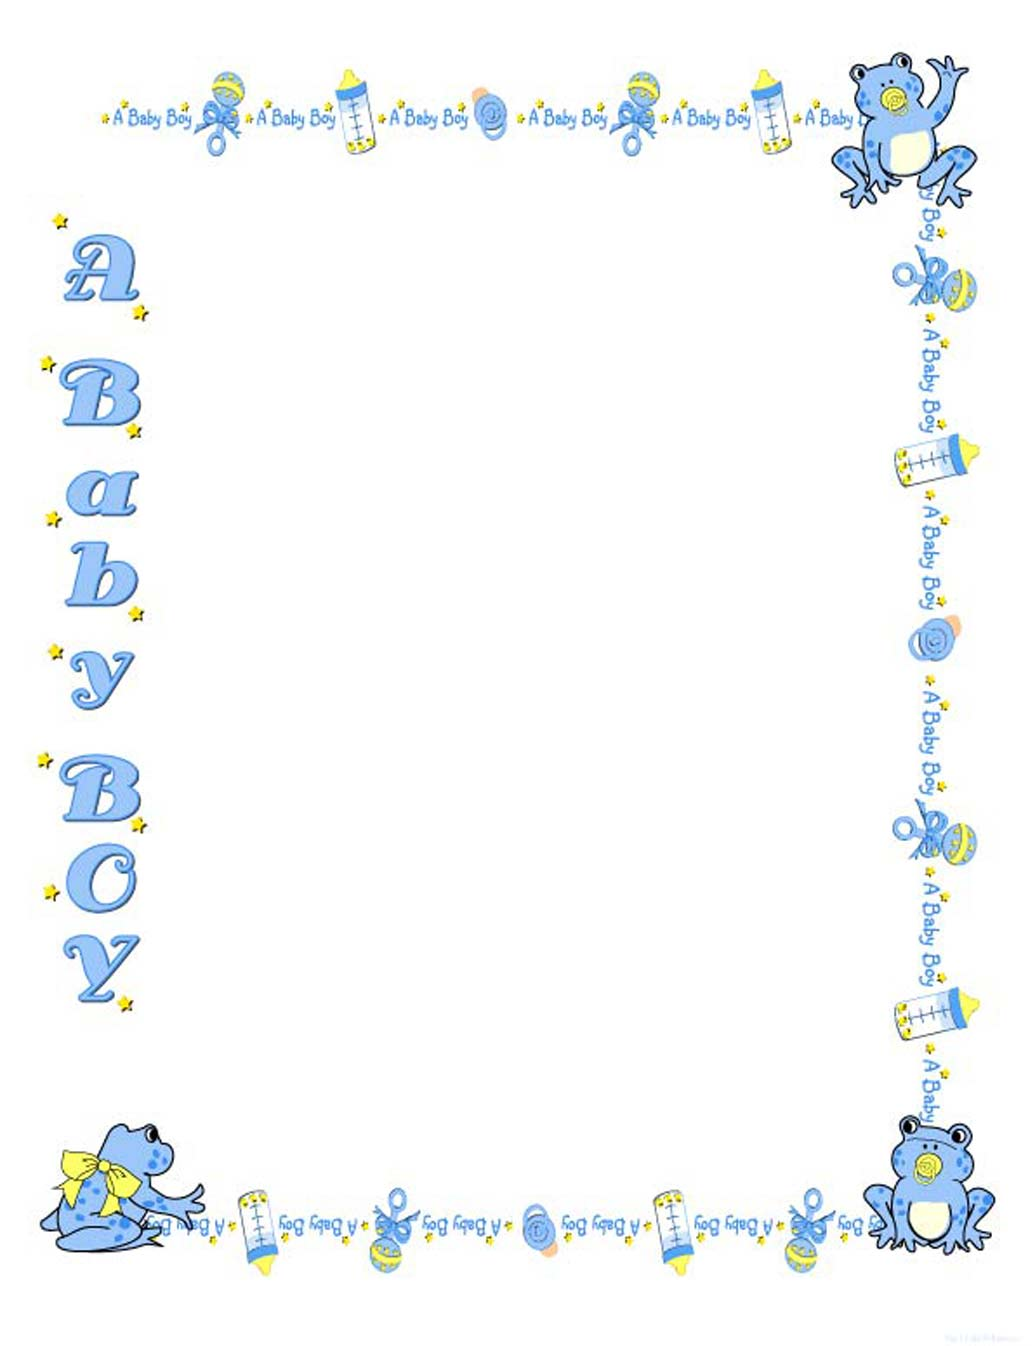 Baby shower borders clip art royalty free Free Baby Shower Border Templates - Cliparts.co royalty free